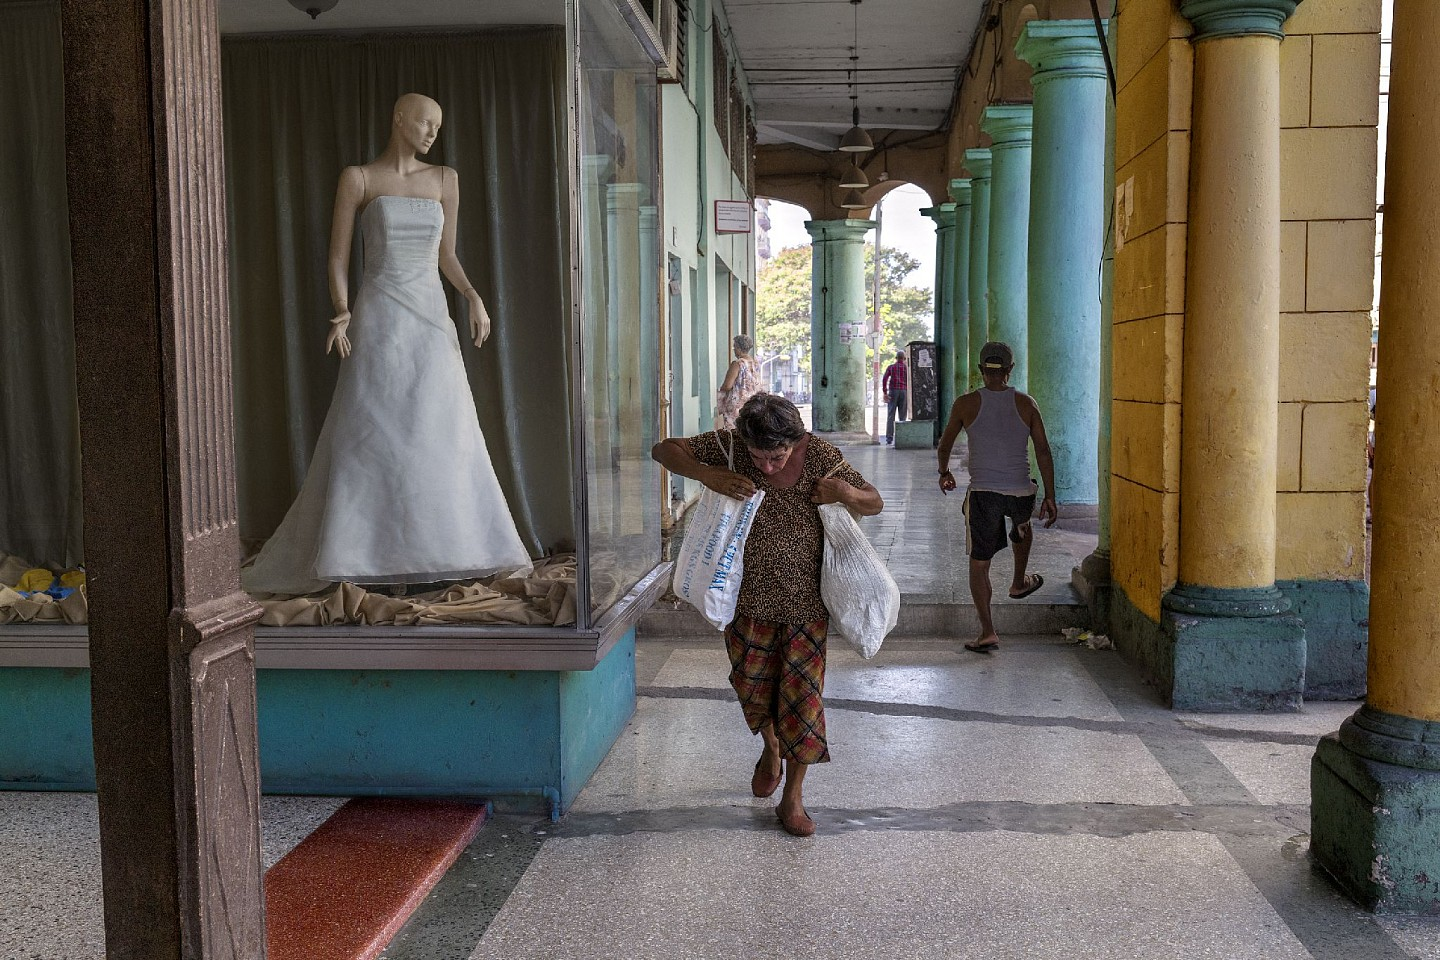 Steve McCurry ,   Woman Walks by Wedding Dress  ,  2019     FujiFlex Crystal Archive Print     Price/Size on request